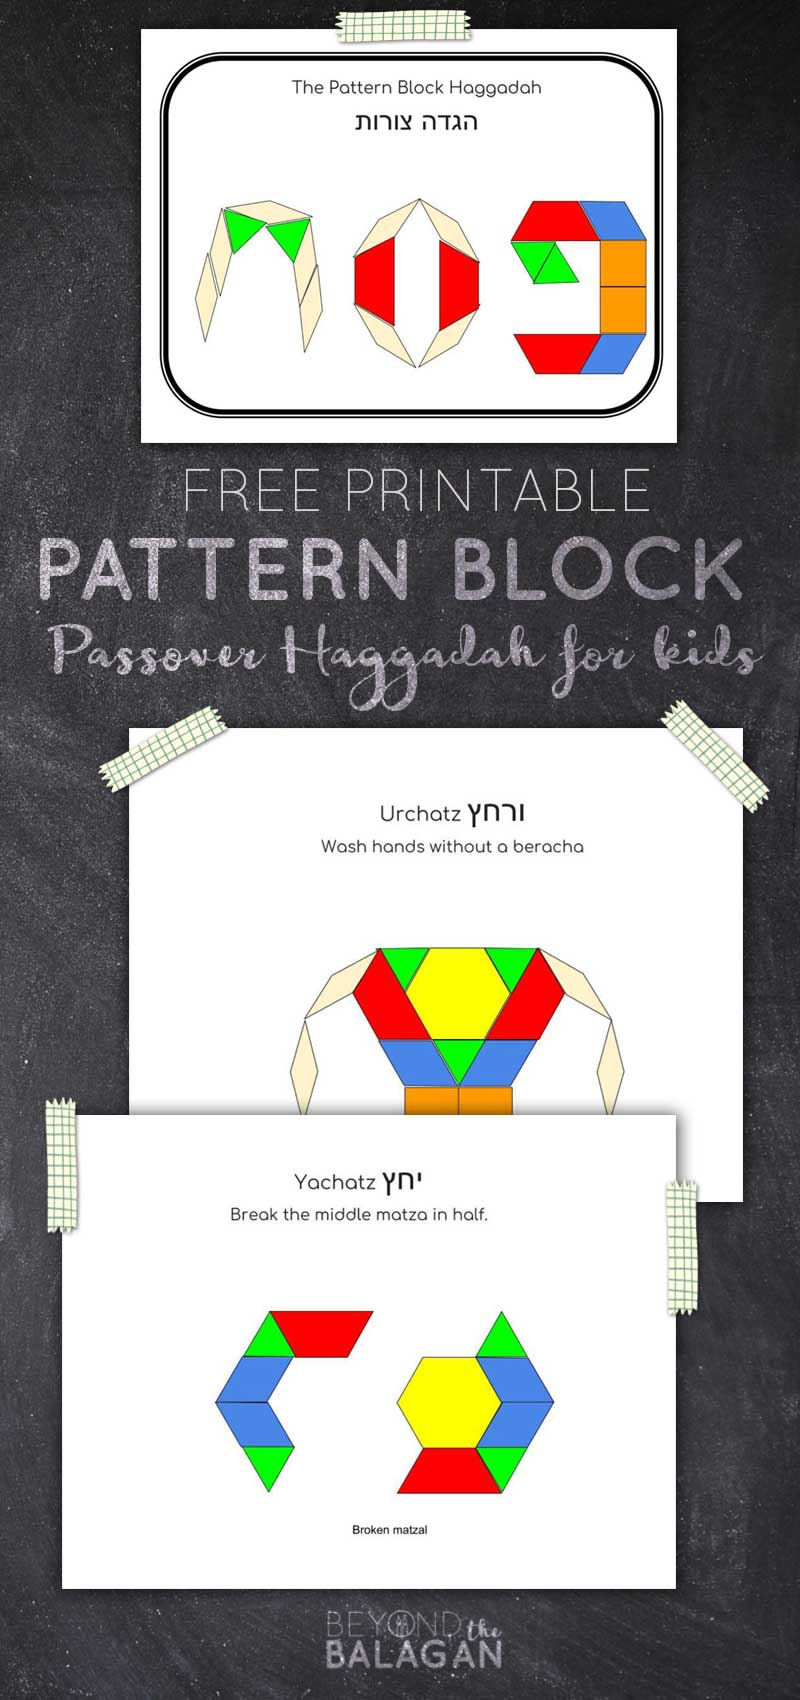 photograph regarding Printable Haggadah titled Free of charge Printable Routine Blocks Haggadah for small children - Jewish